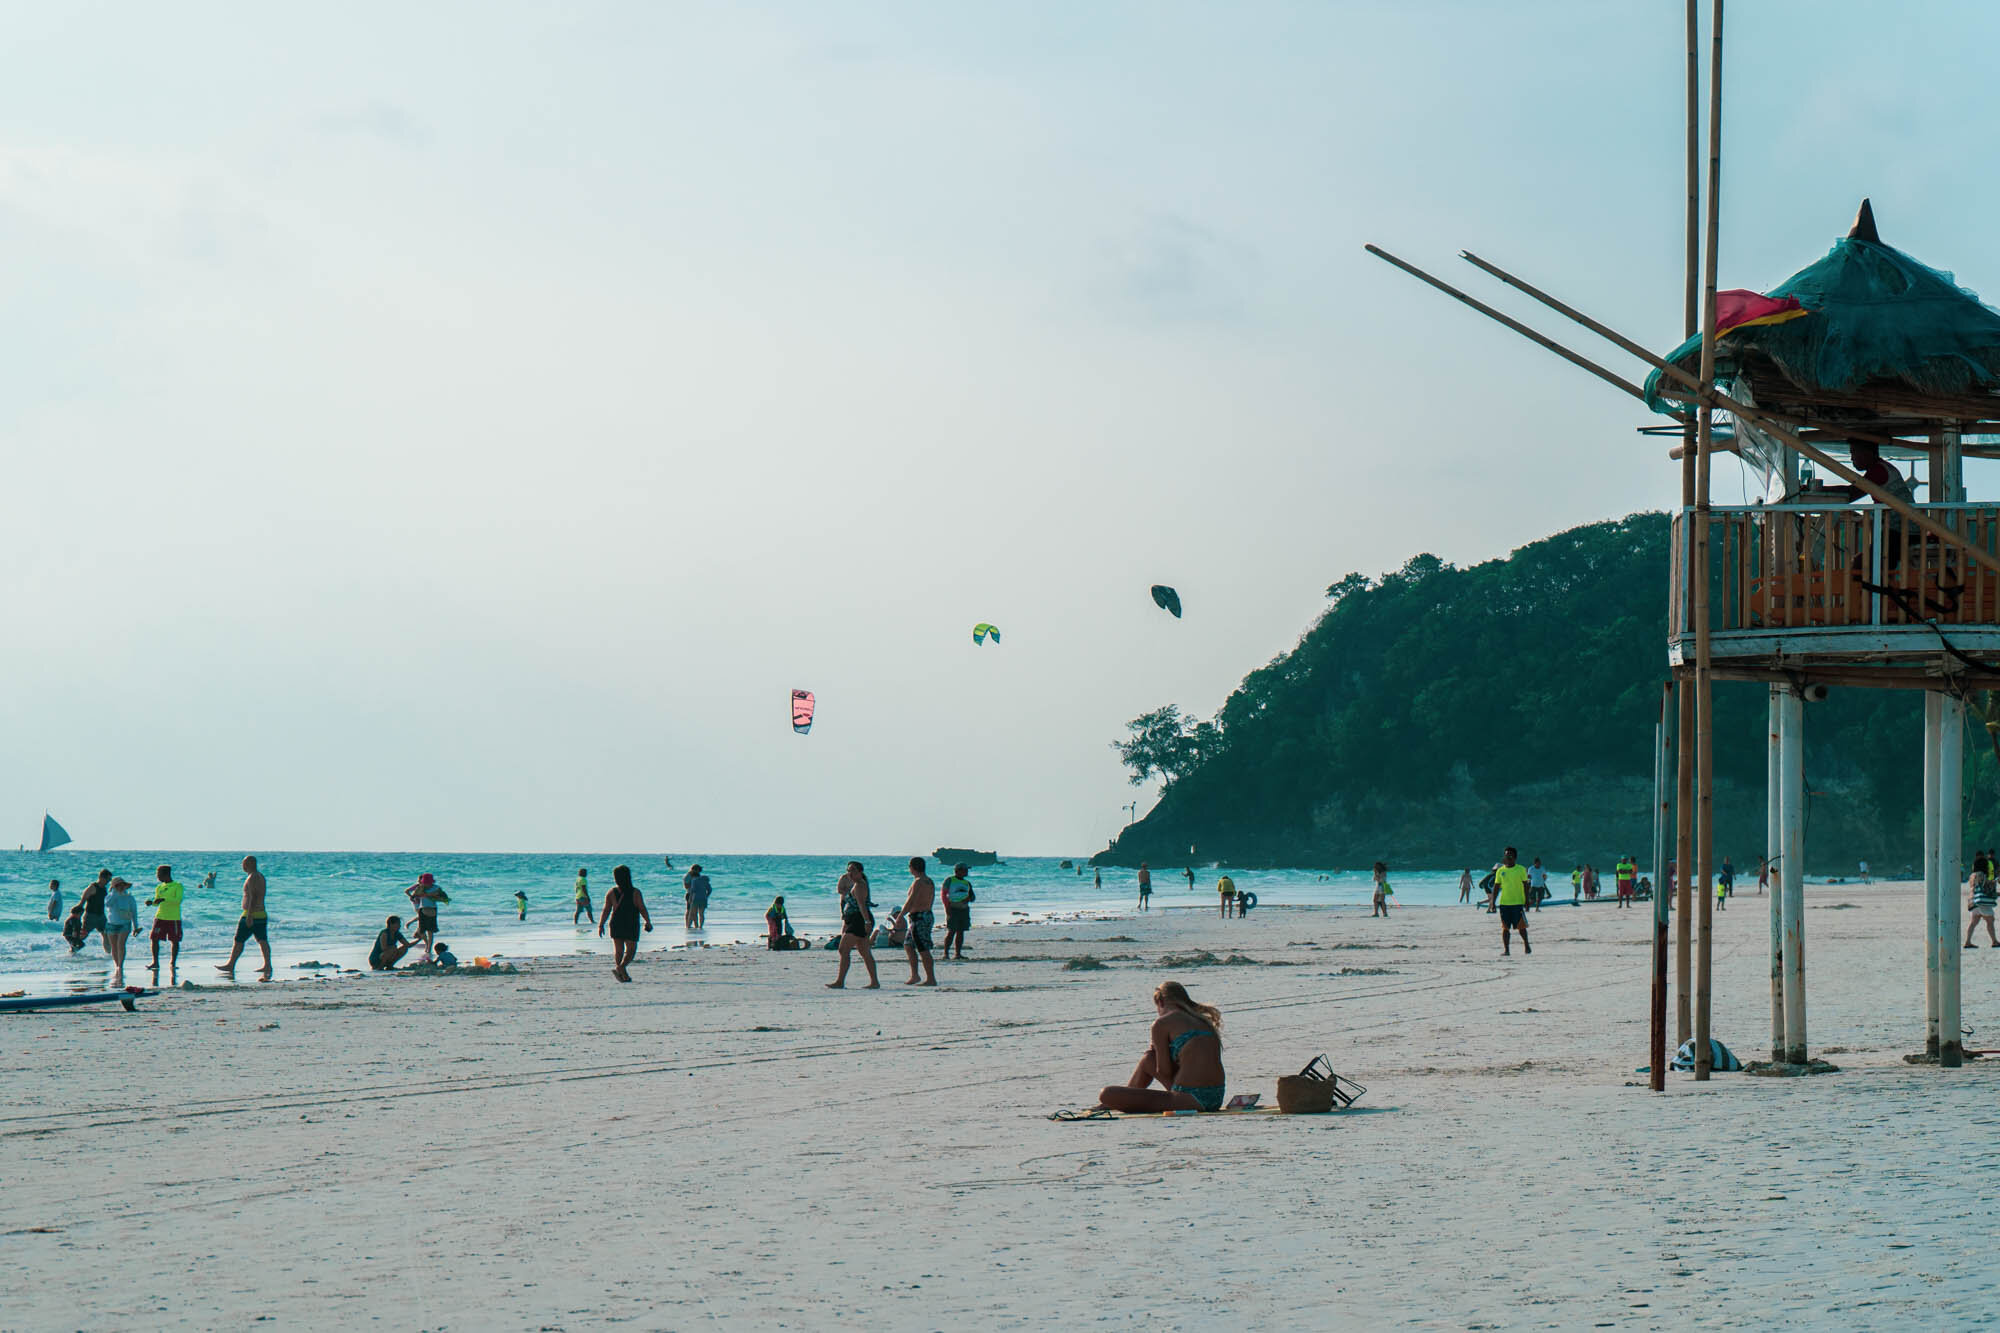 2019, White Beach. This is the designated spot for water sports in Station 1 to prevent overcrowding the beach line.